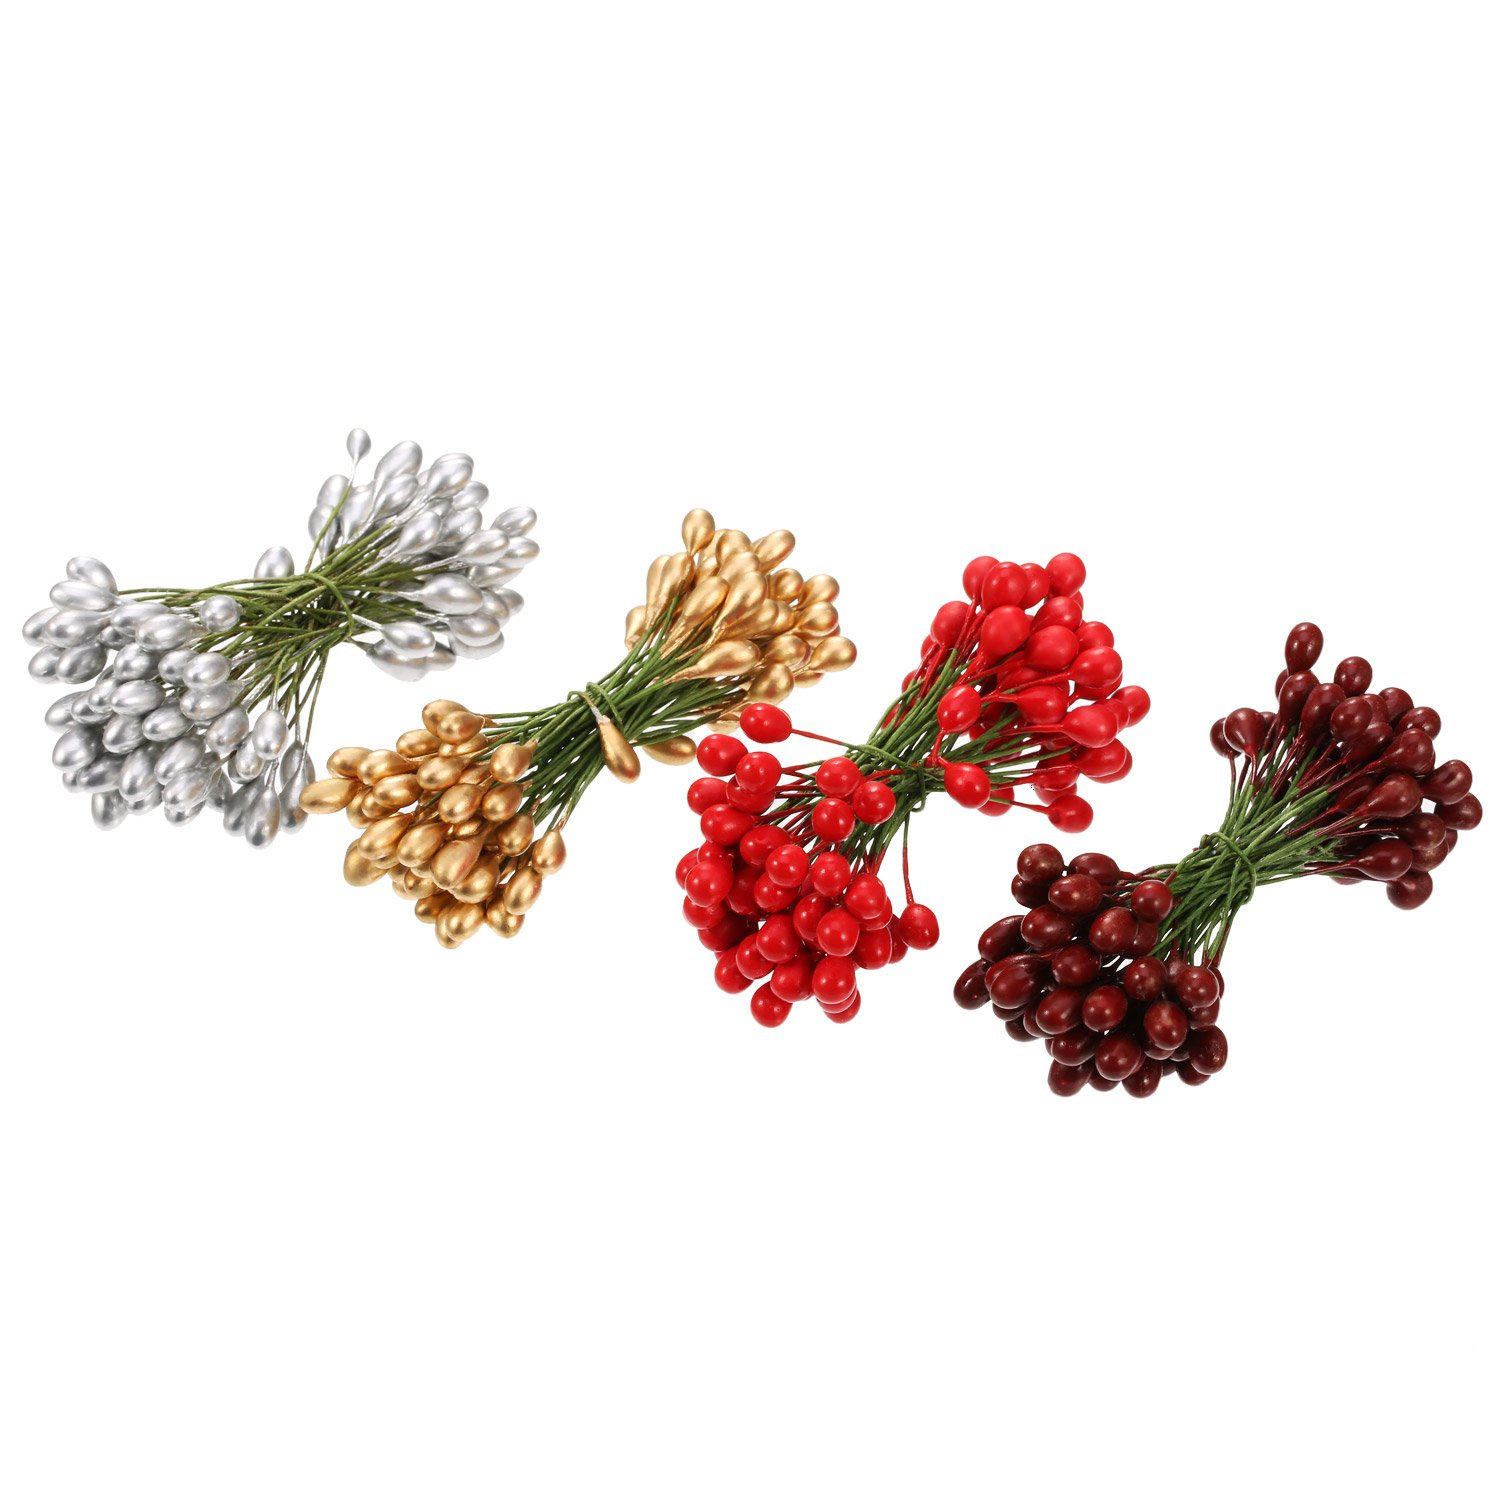 BBTO Artificial Holly Berries Gold 100 Pieces Mini 10 mm Fake Berries Decor on Wire for Christmas Tree Decorations Flower Wreath DIY Craft Use